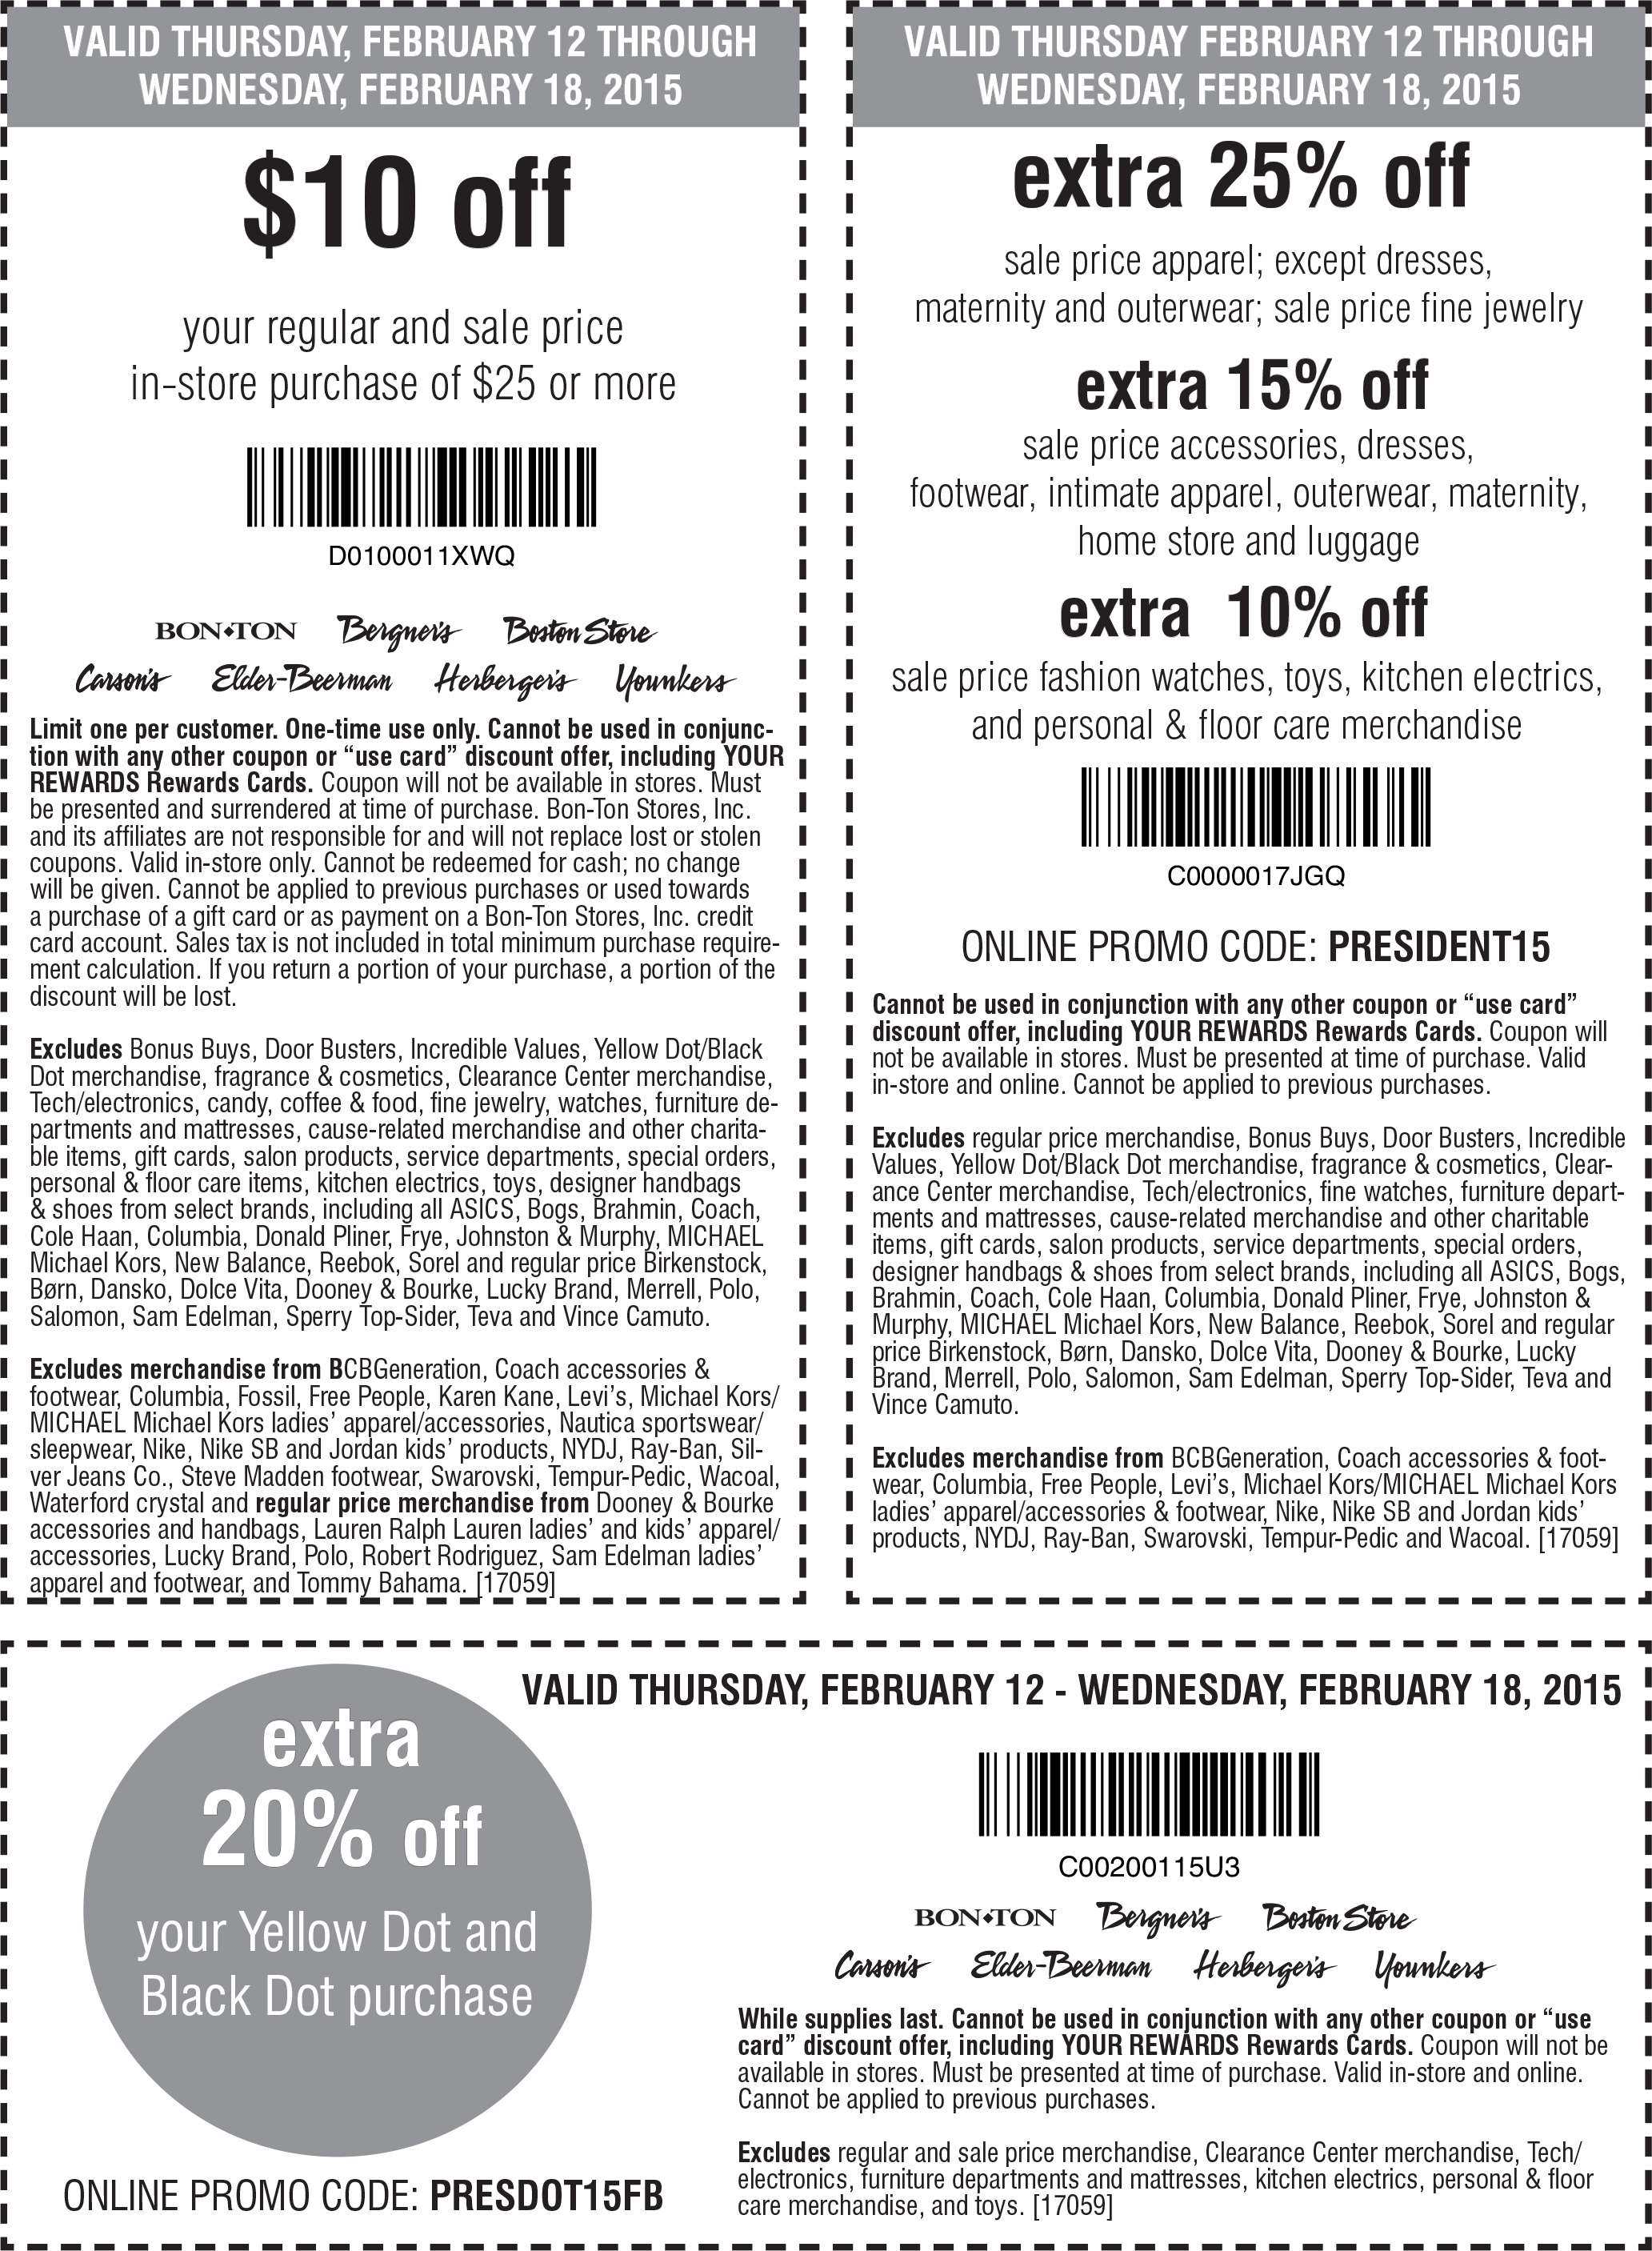 Carsons Coupon October 2016 $10 off $25 & more at Carsons, Bon Ton & sister stores, or 25% off sale apparel online via promo code PRESIDENT15